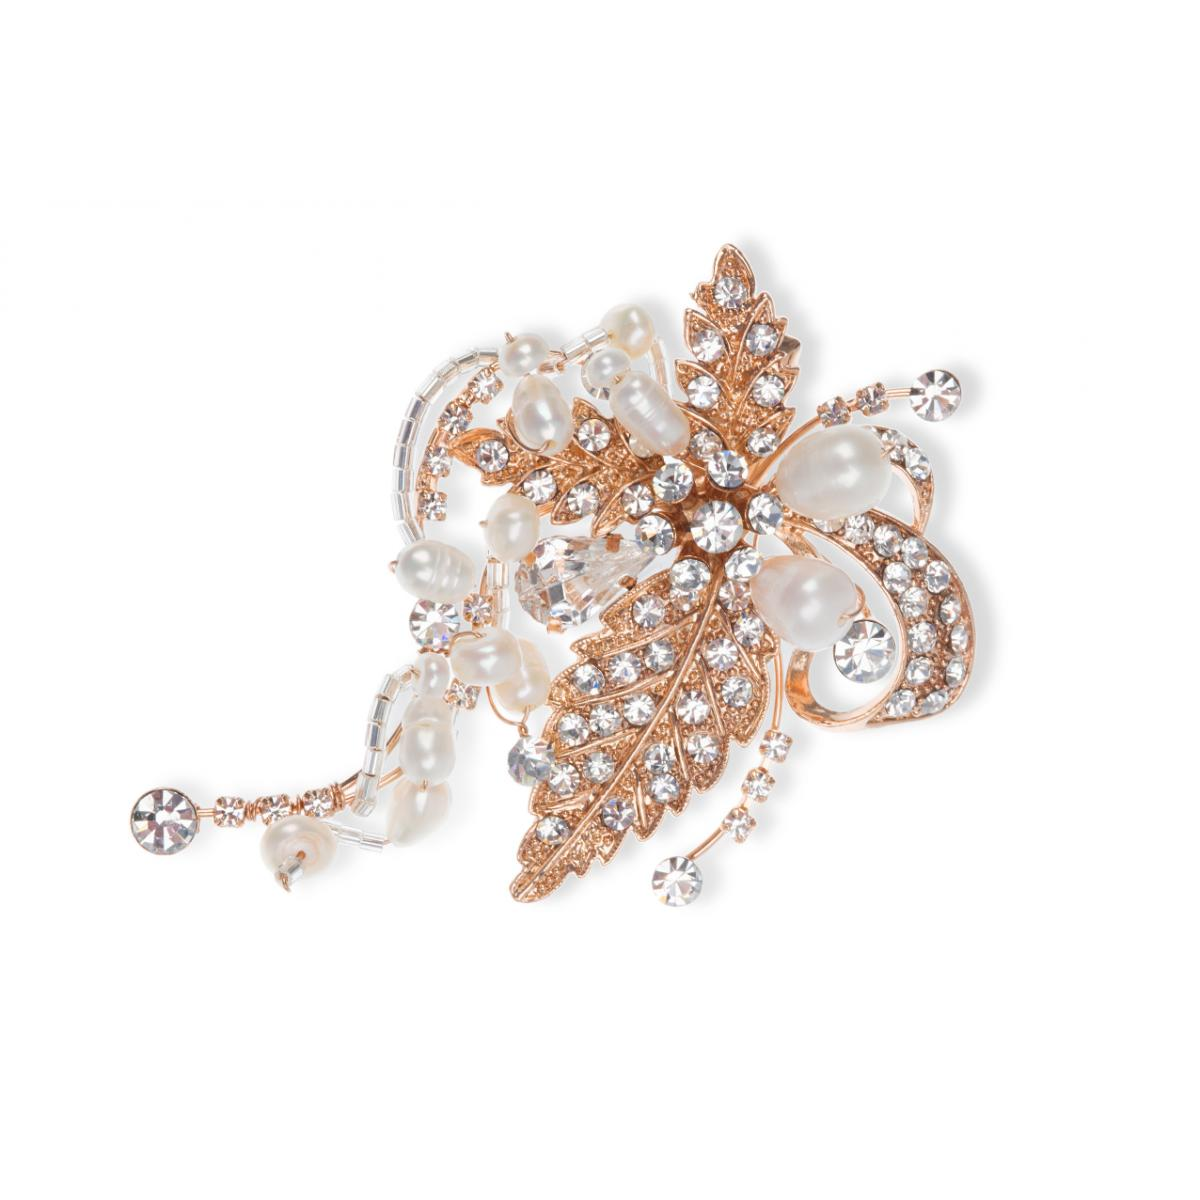 Ivory & Co Tallulah Rose Gold Crystal Floral Hair Clip 1